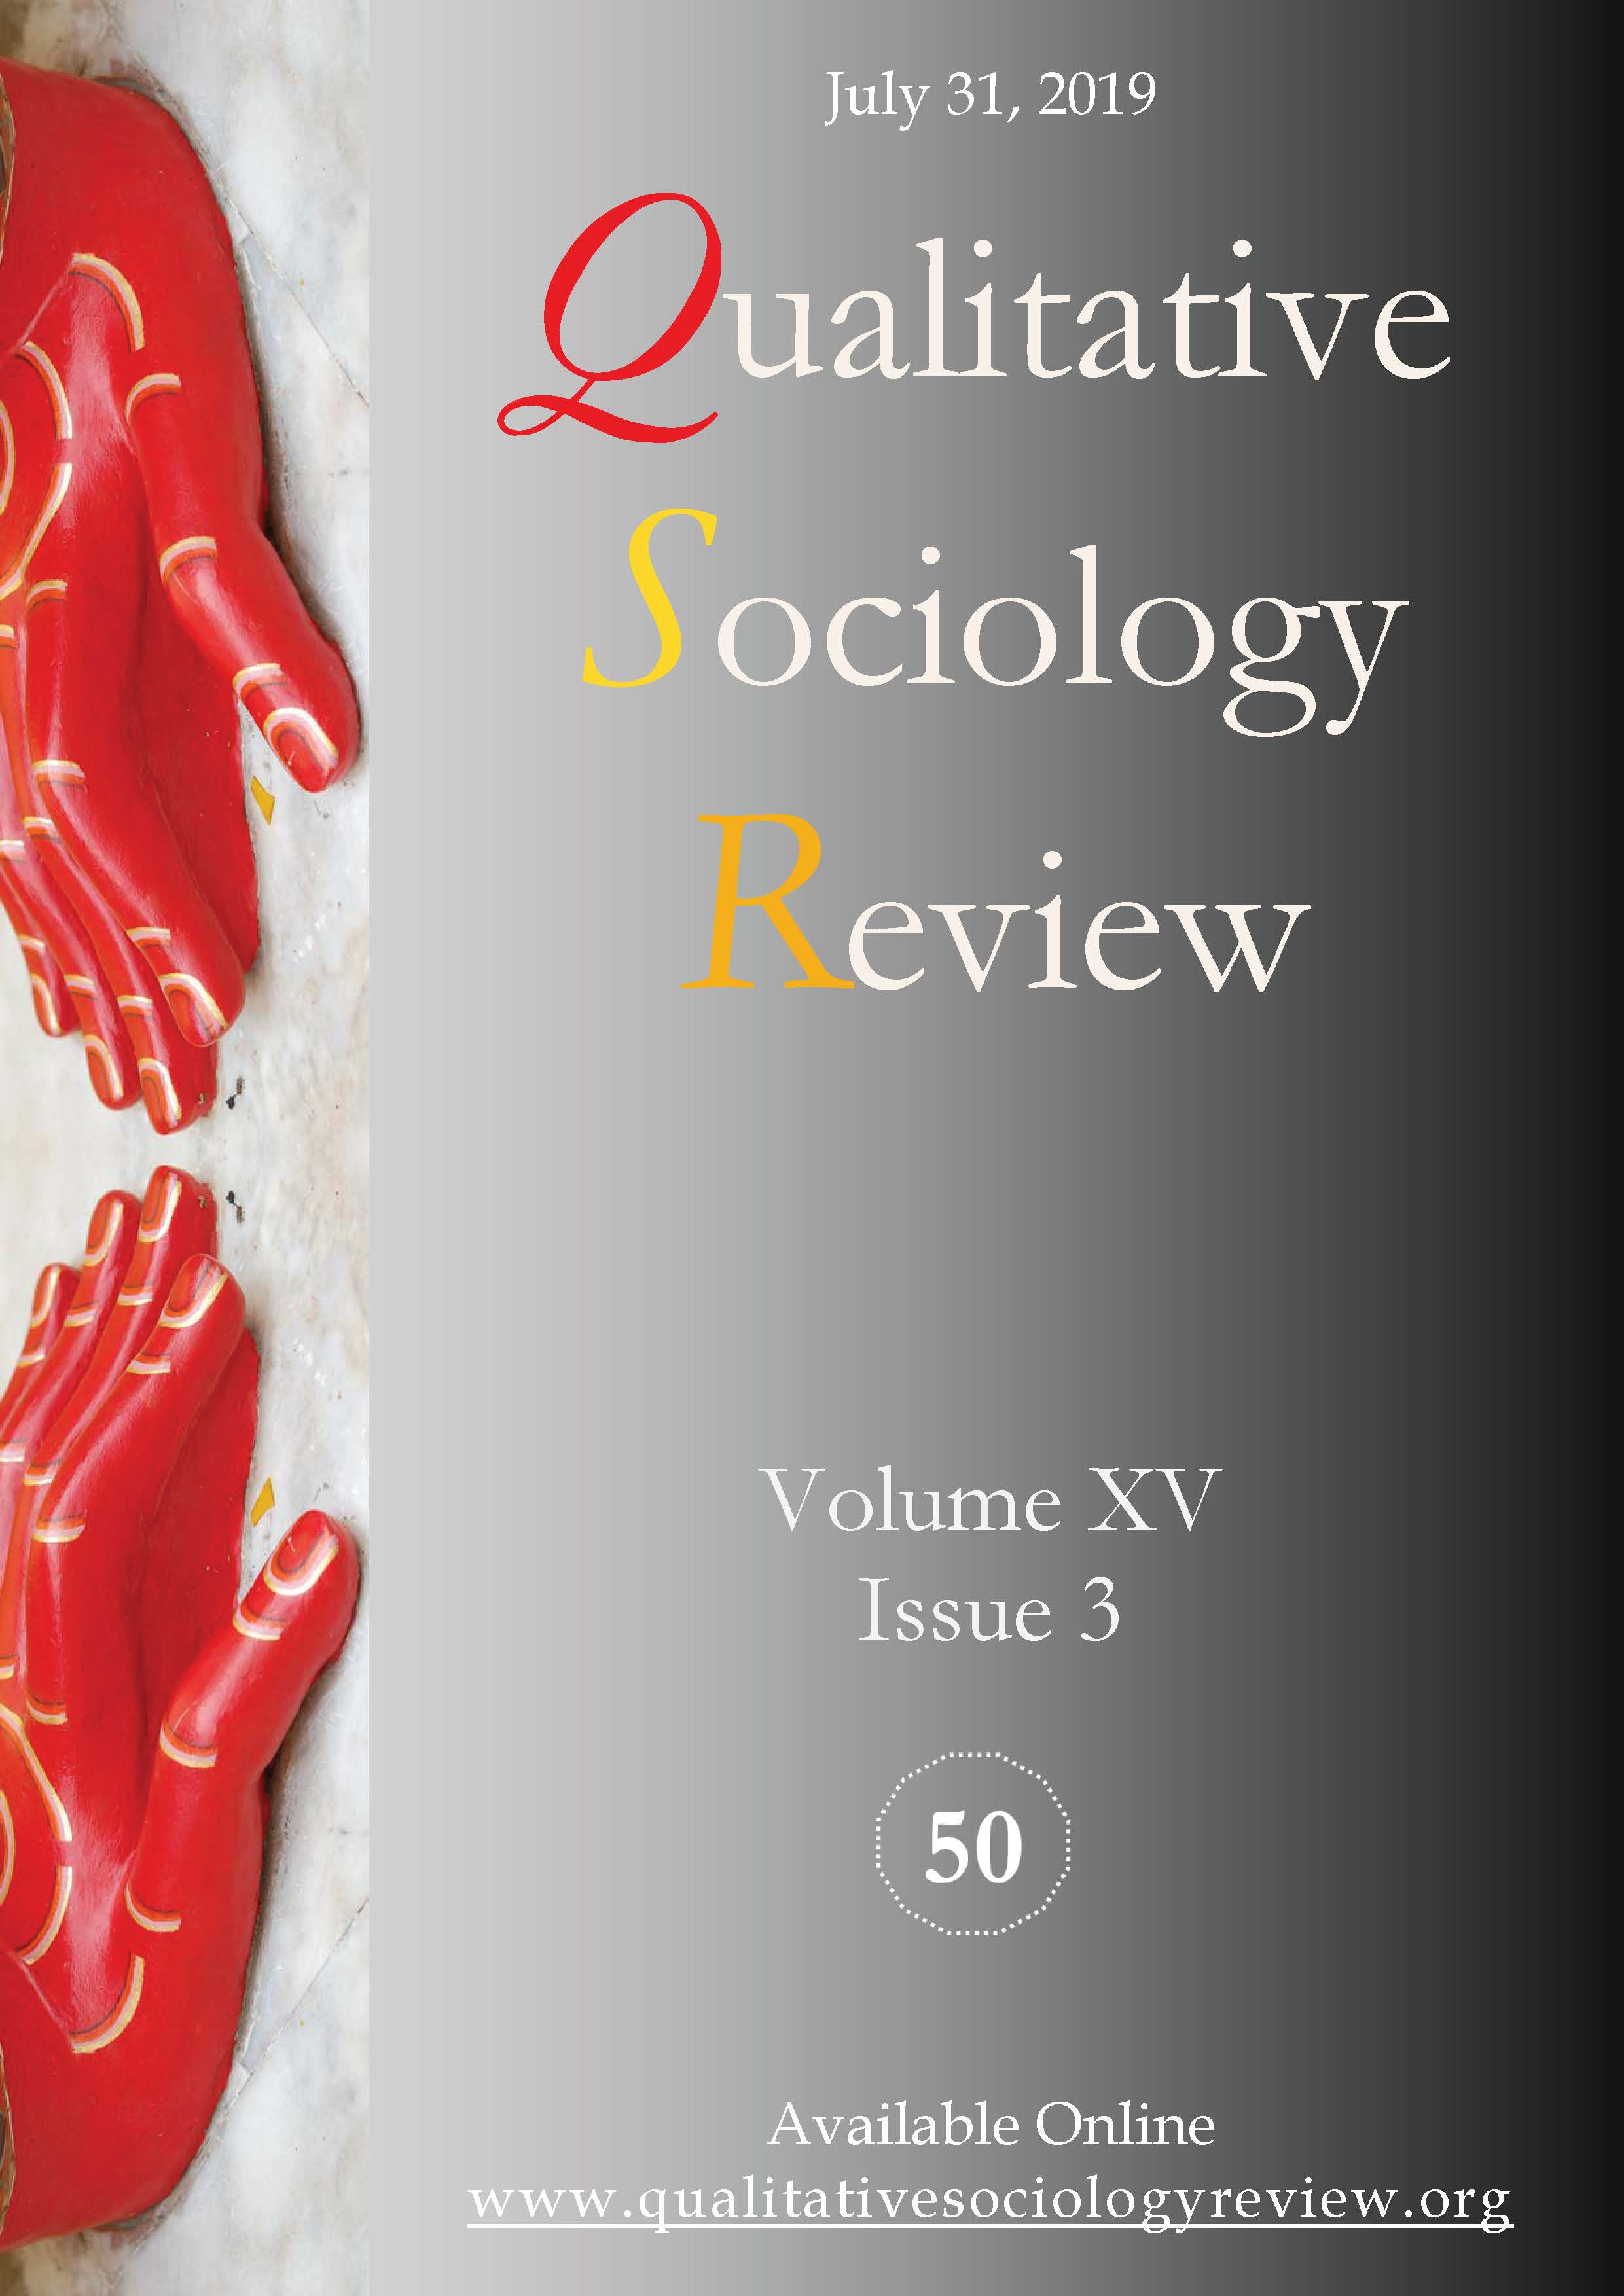 Creative Thinking in Qualitative Research and Analysis Cover Image